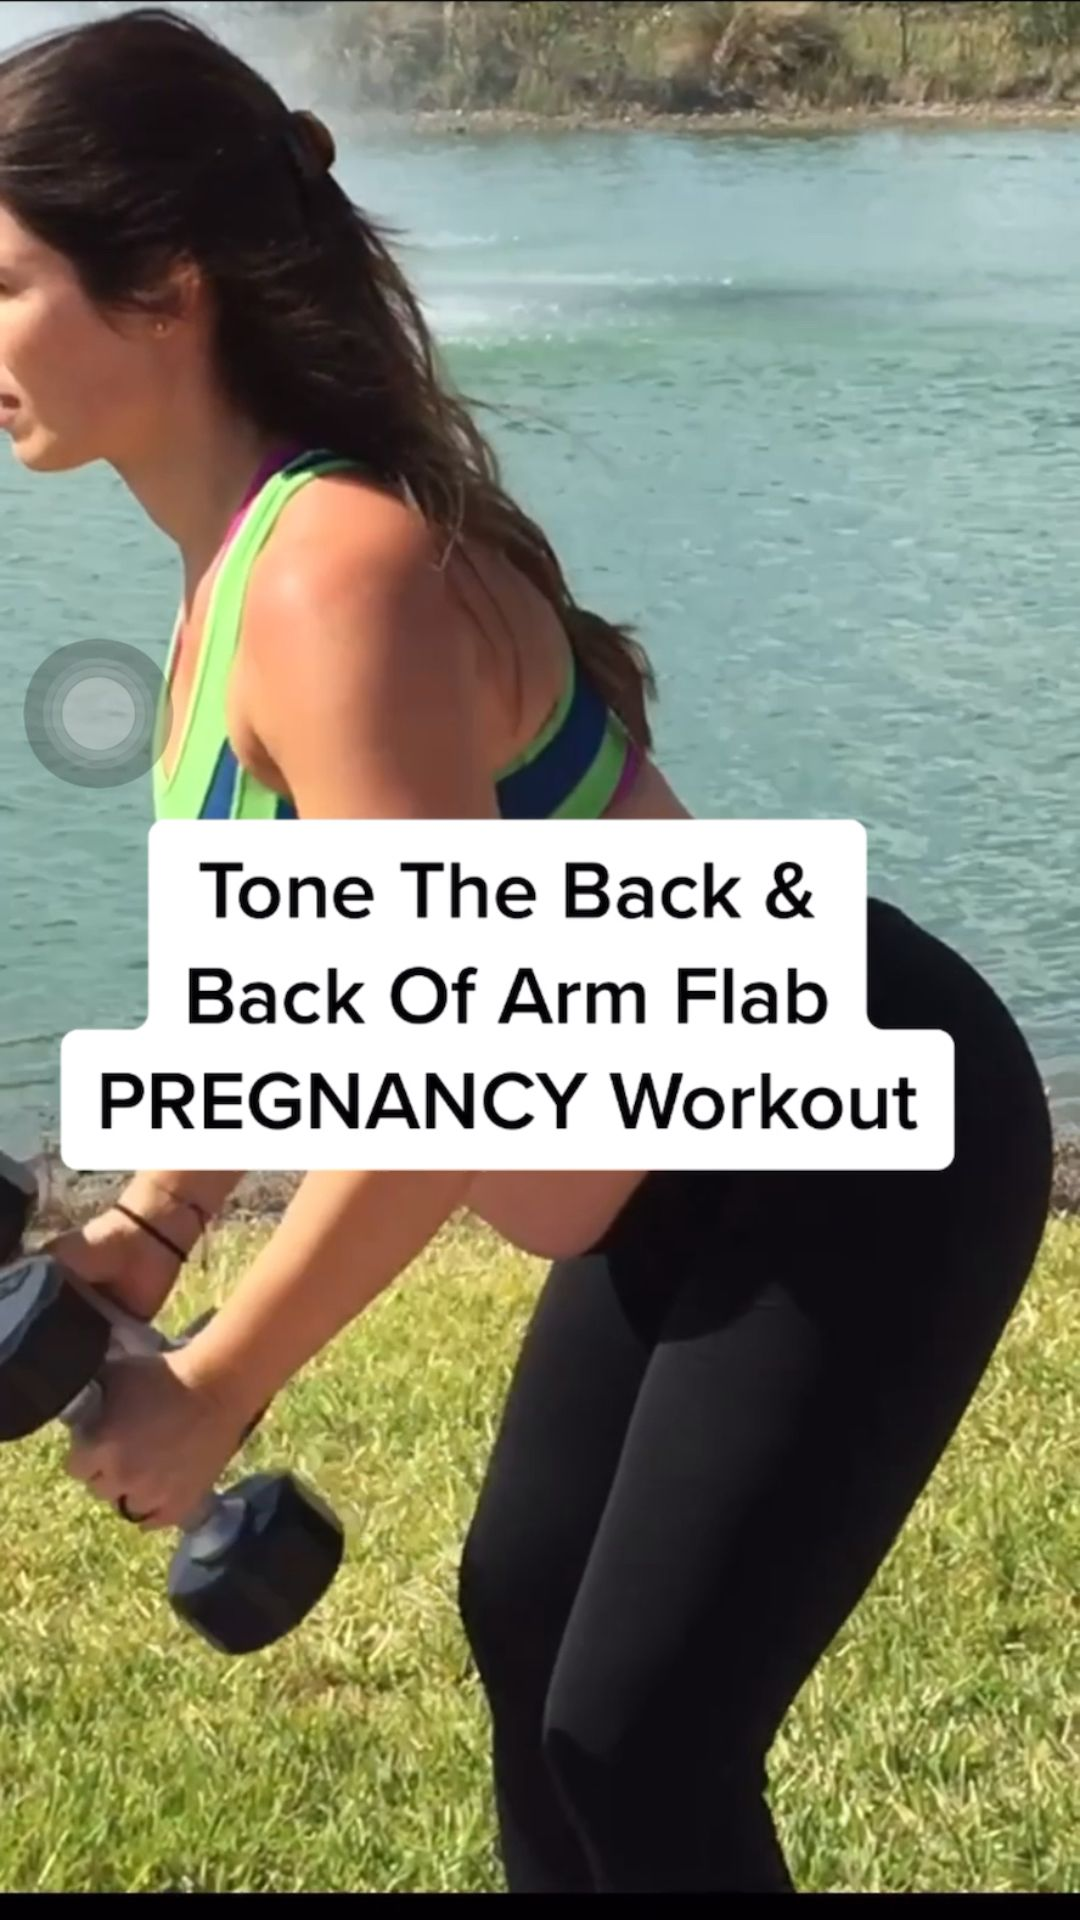 BACK & BACK OF ARMS At Home Pregnancy Workout